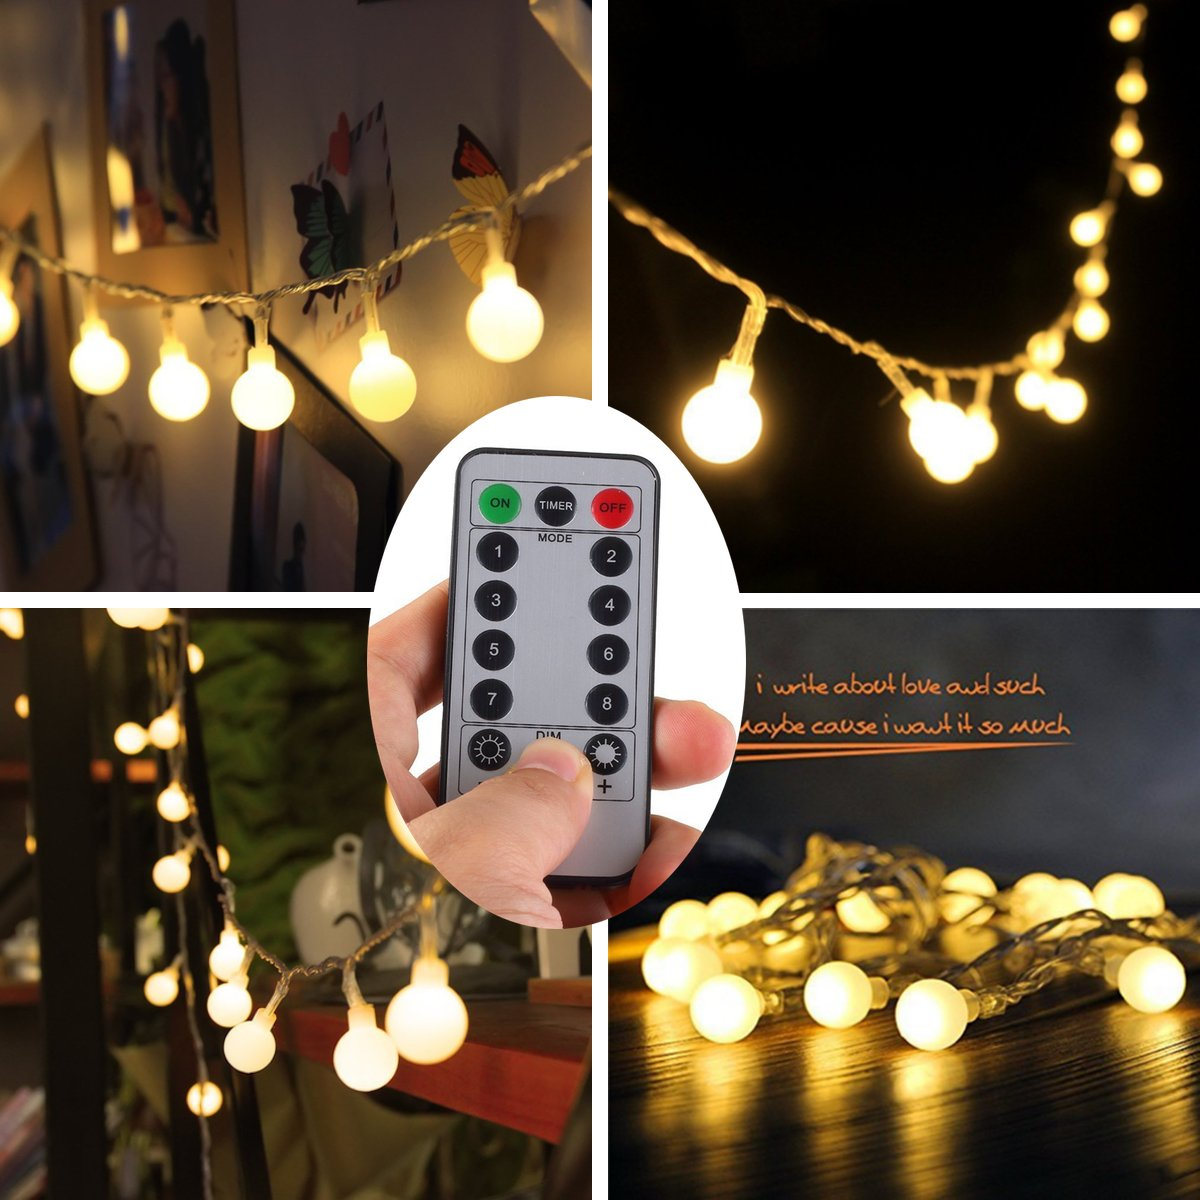 Outdoor String Lights With Remote : [Remote & Timer] 16 Feet 50 LED Outdoor Globe String Lights 8 Modes Battery Oper eBay